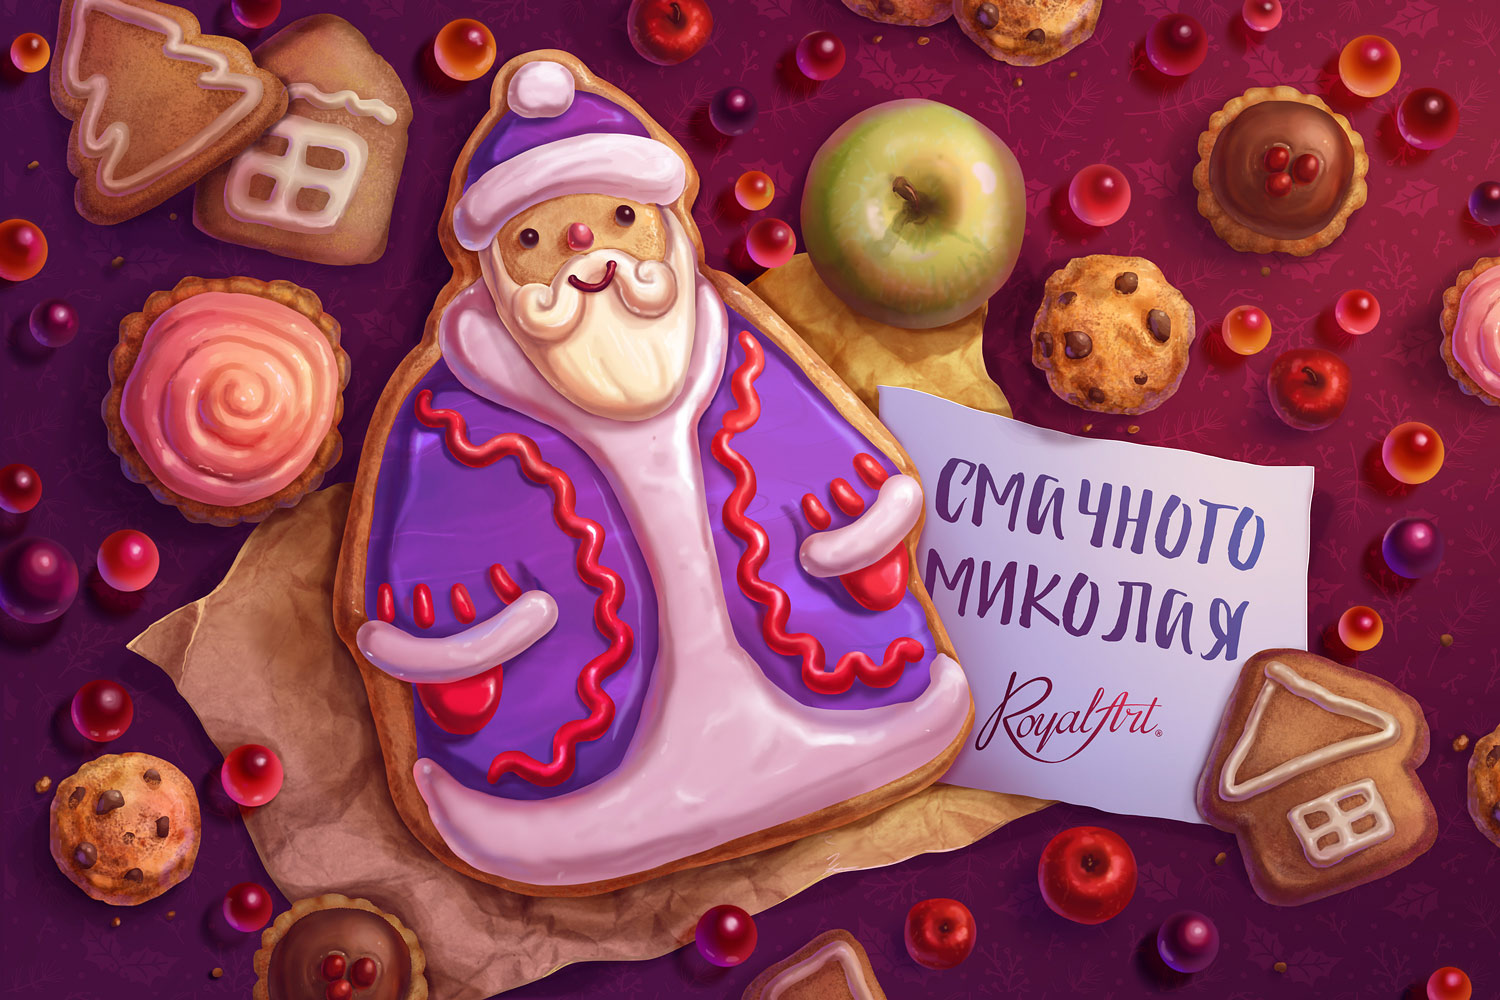 An e-card for St. Nicholas Day. Have a tasty Nicholas. Royal Art.